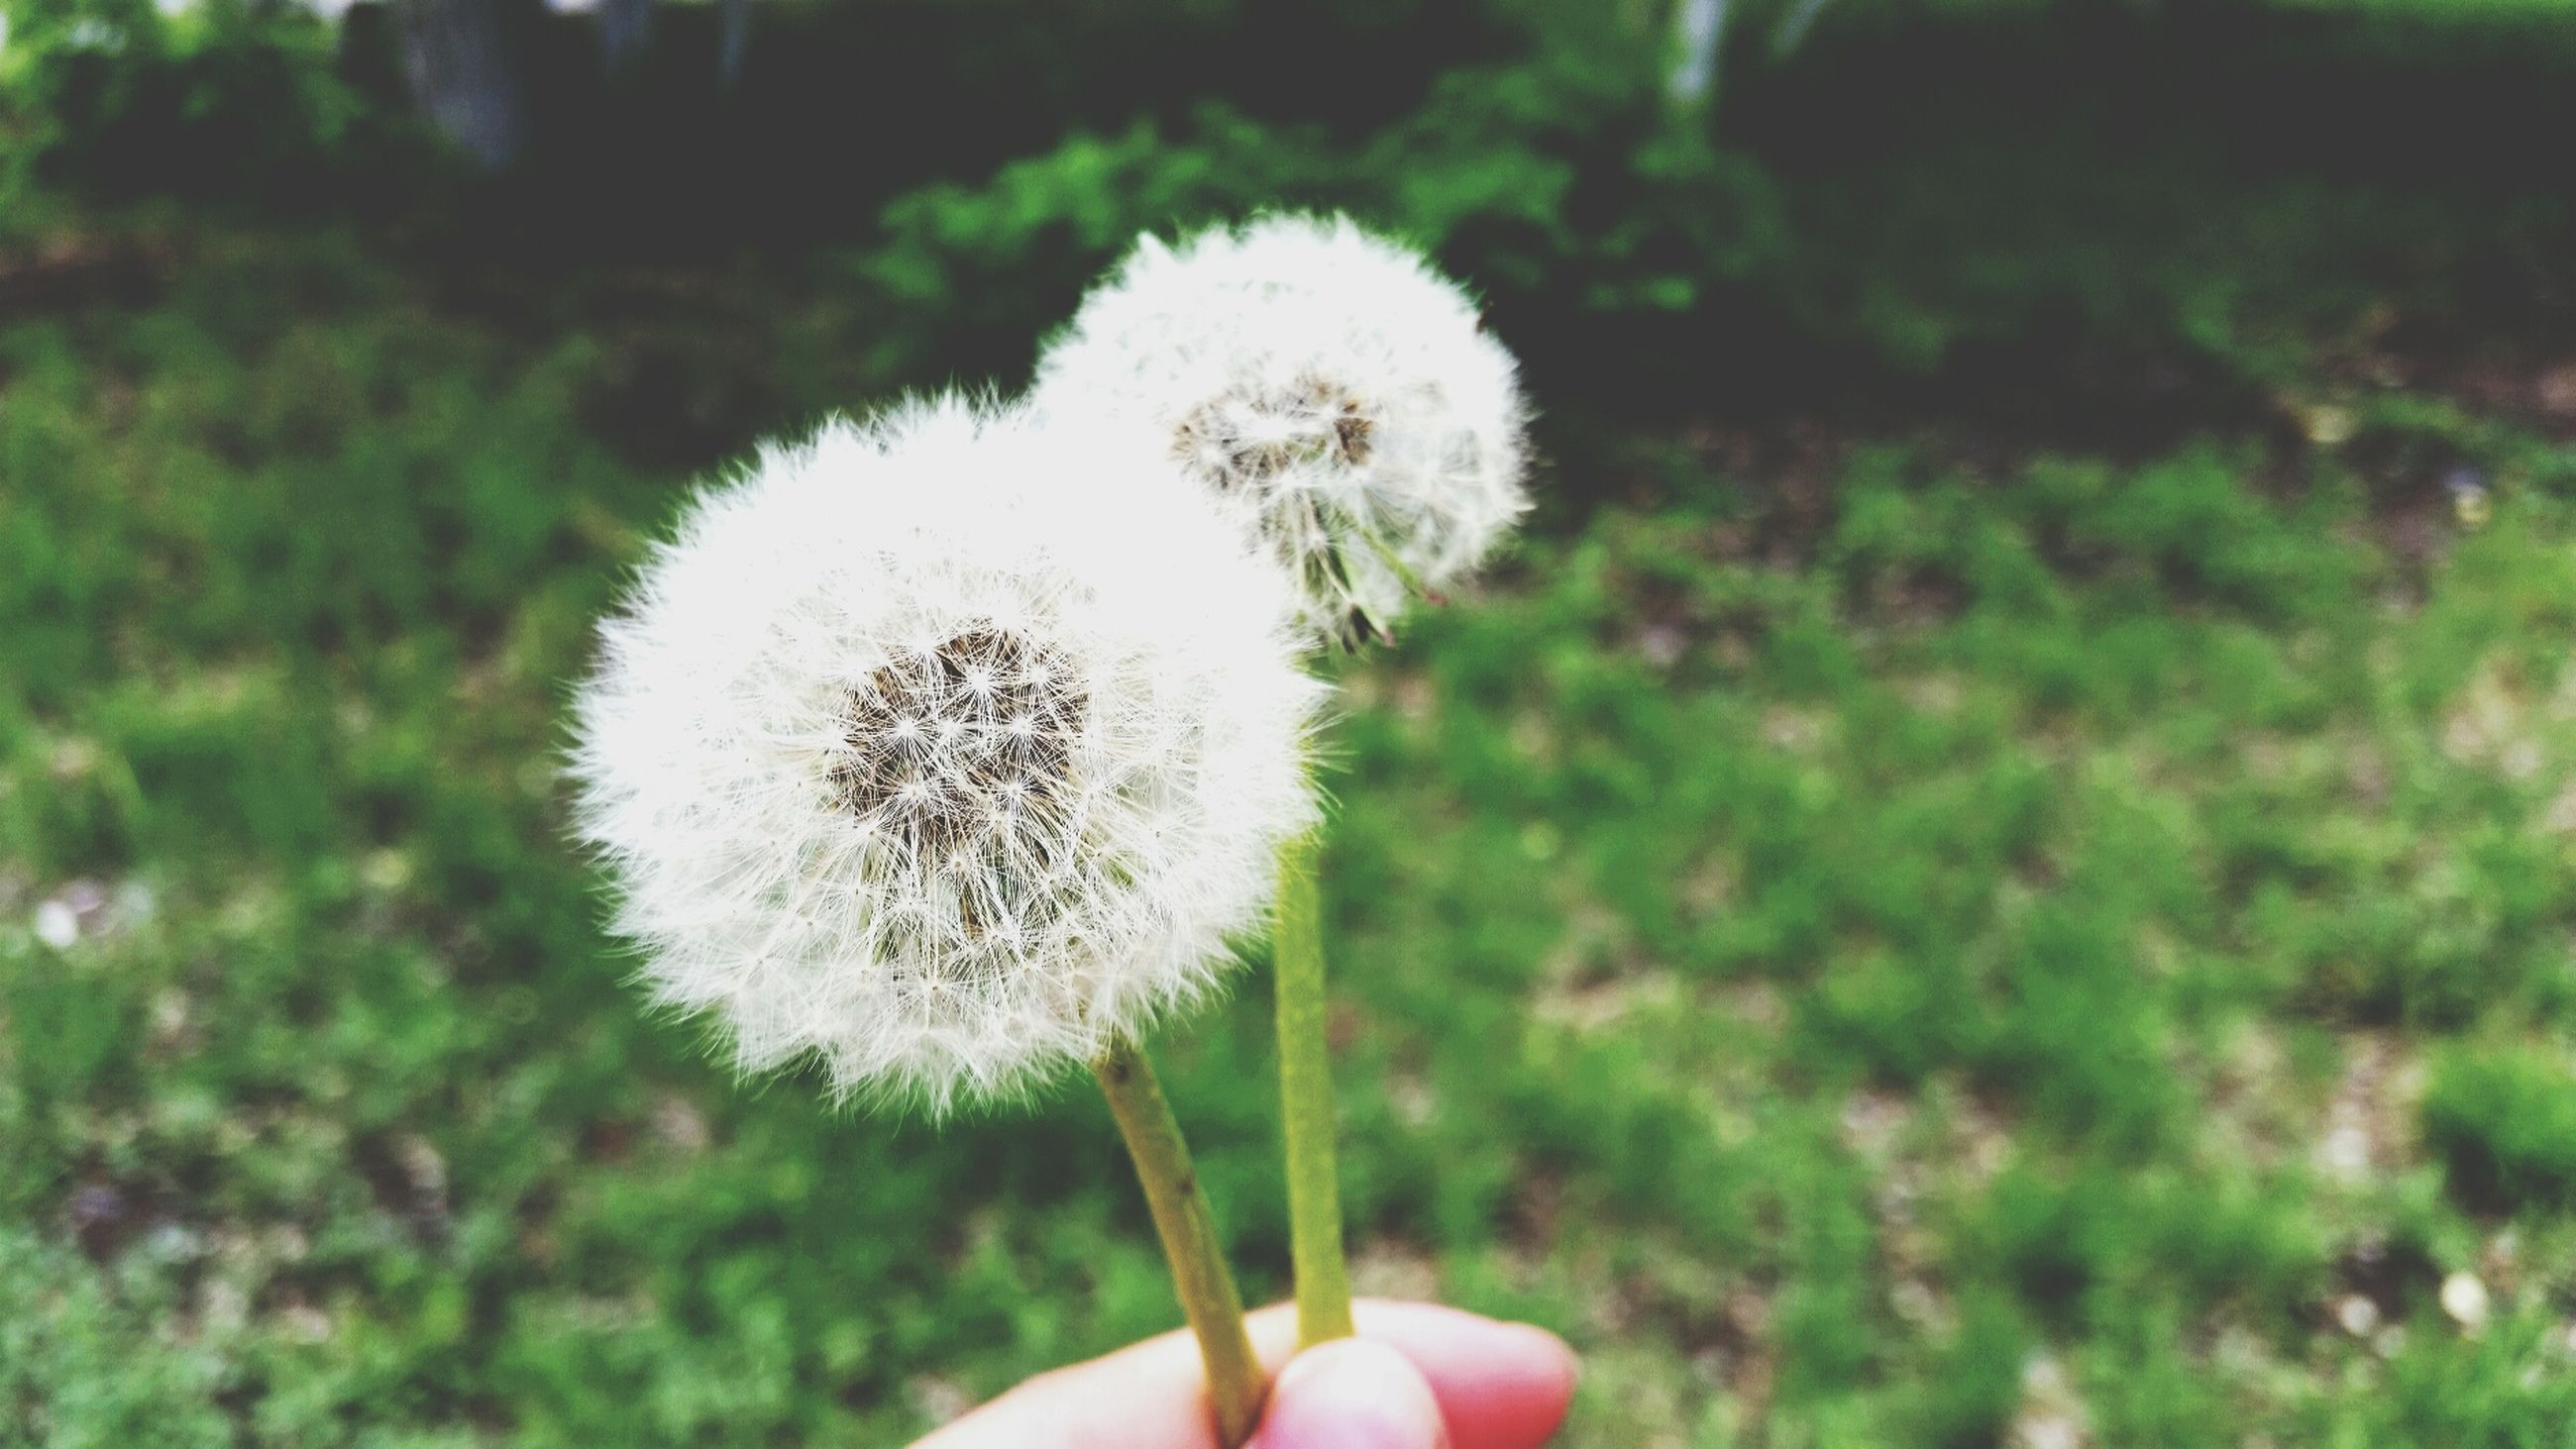 person, dandelion, flower, holding, fragility, part of, focus on foreground, flower head, freshness, cropped, unrecognizable person, white color, close-up, human finger, single flower, personal perspective, softness